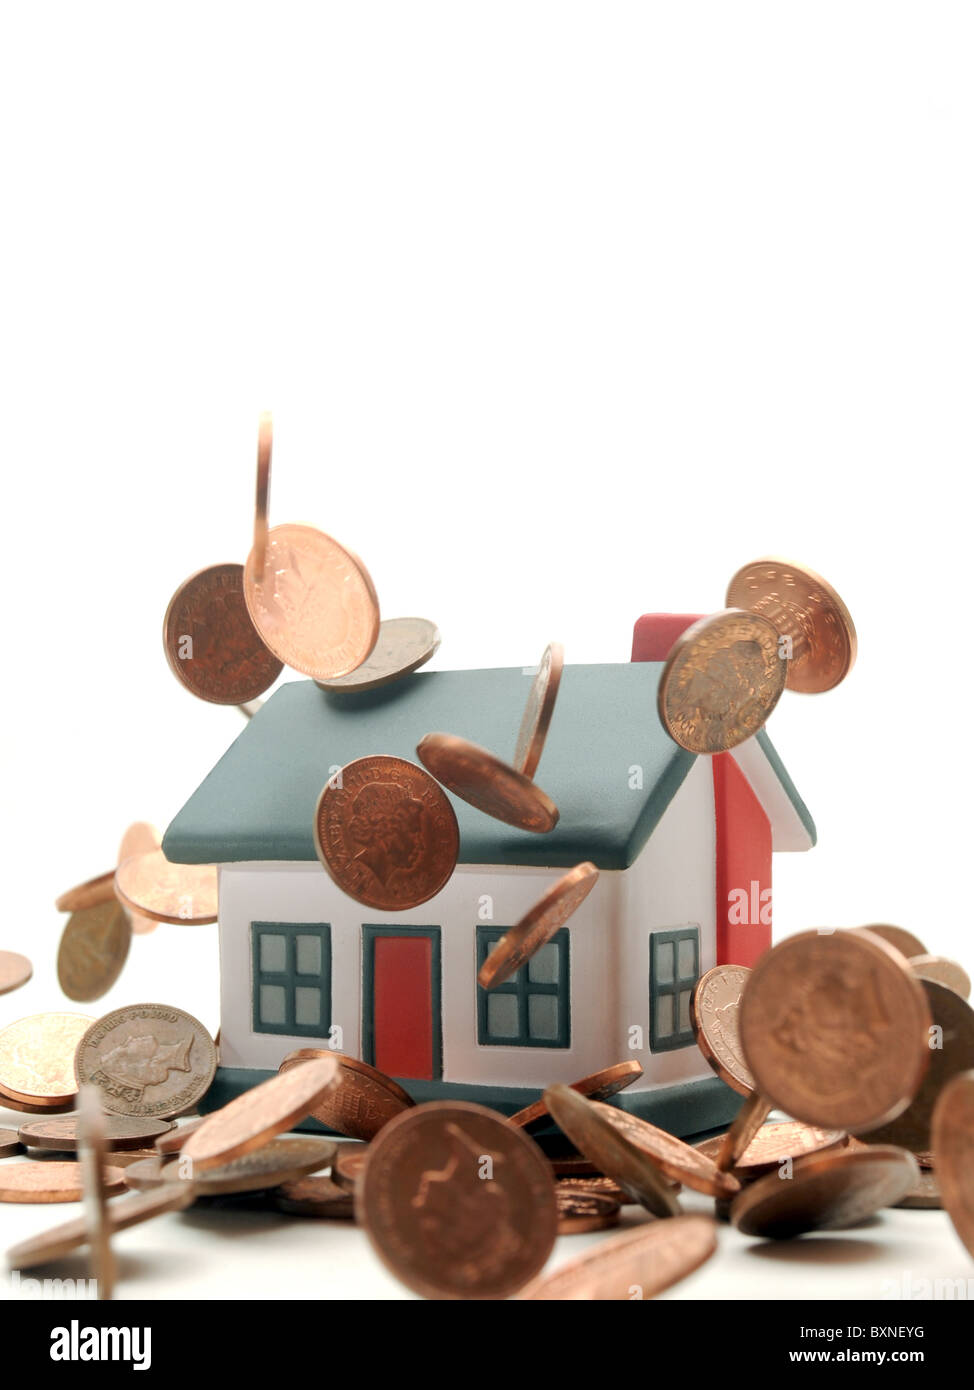 HOUSE WITH COINS DROPPING OVER IT RE PROPERTY MARKETS HOUSING COST BILLS  PRICES MORTGAGES FIRST TIME BUYERS ETC - Stock Image